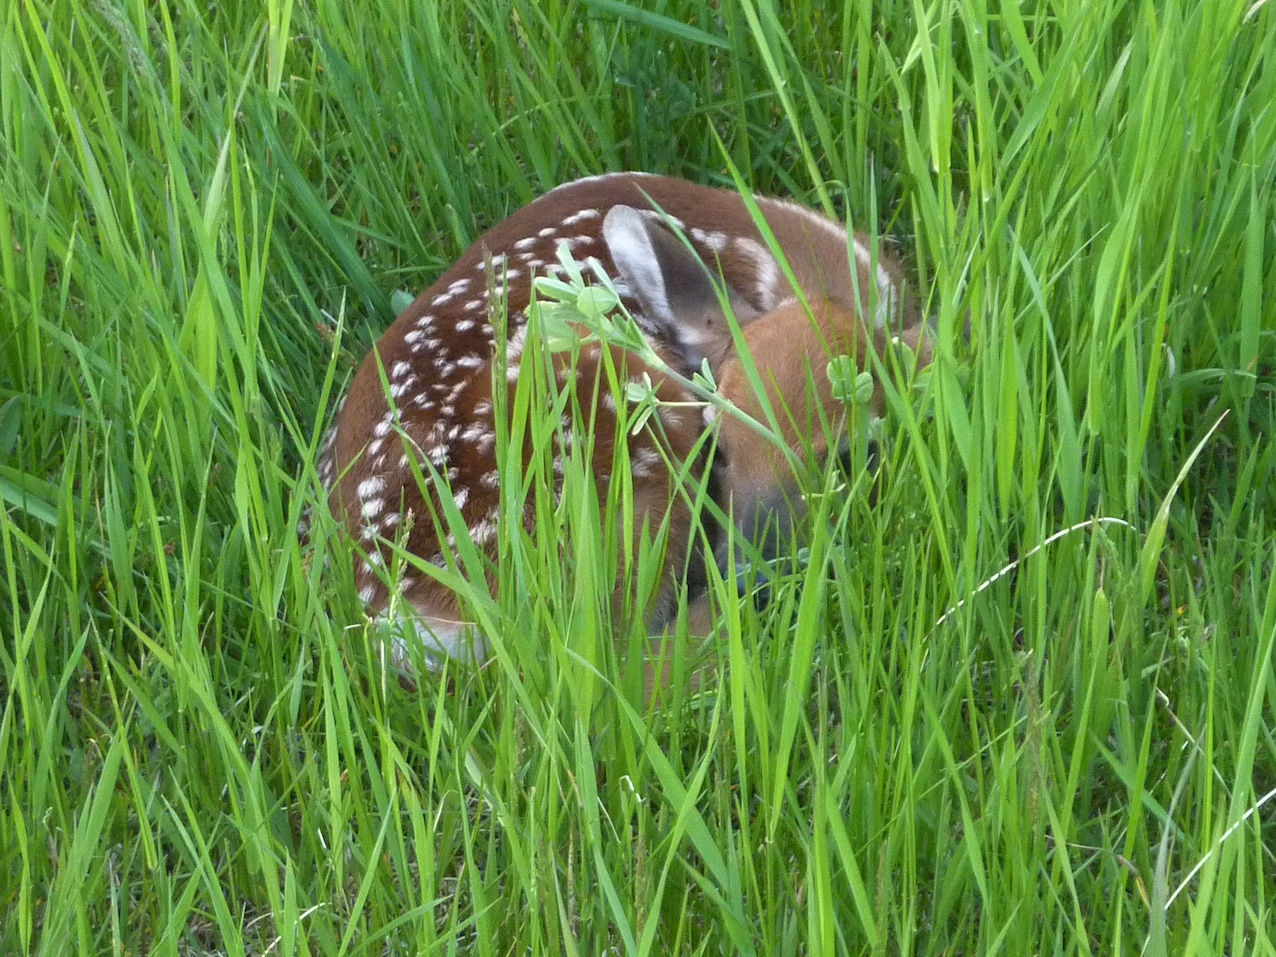 White-tailed deer fawn resting in the grass.